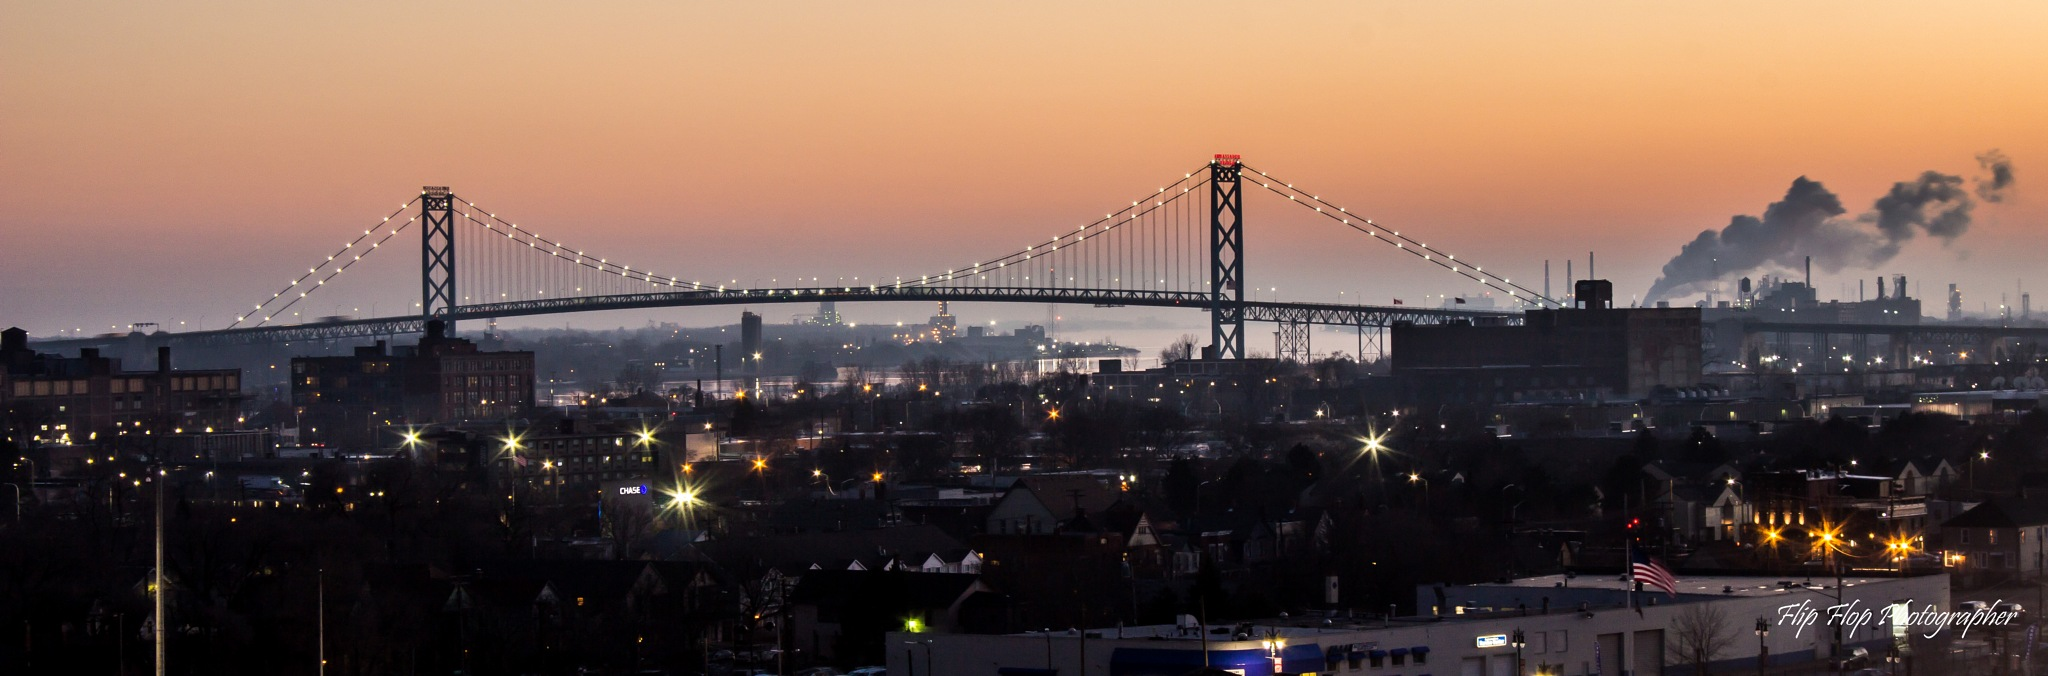 Ambassador Bridge by Angela Mead